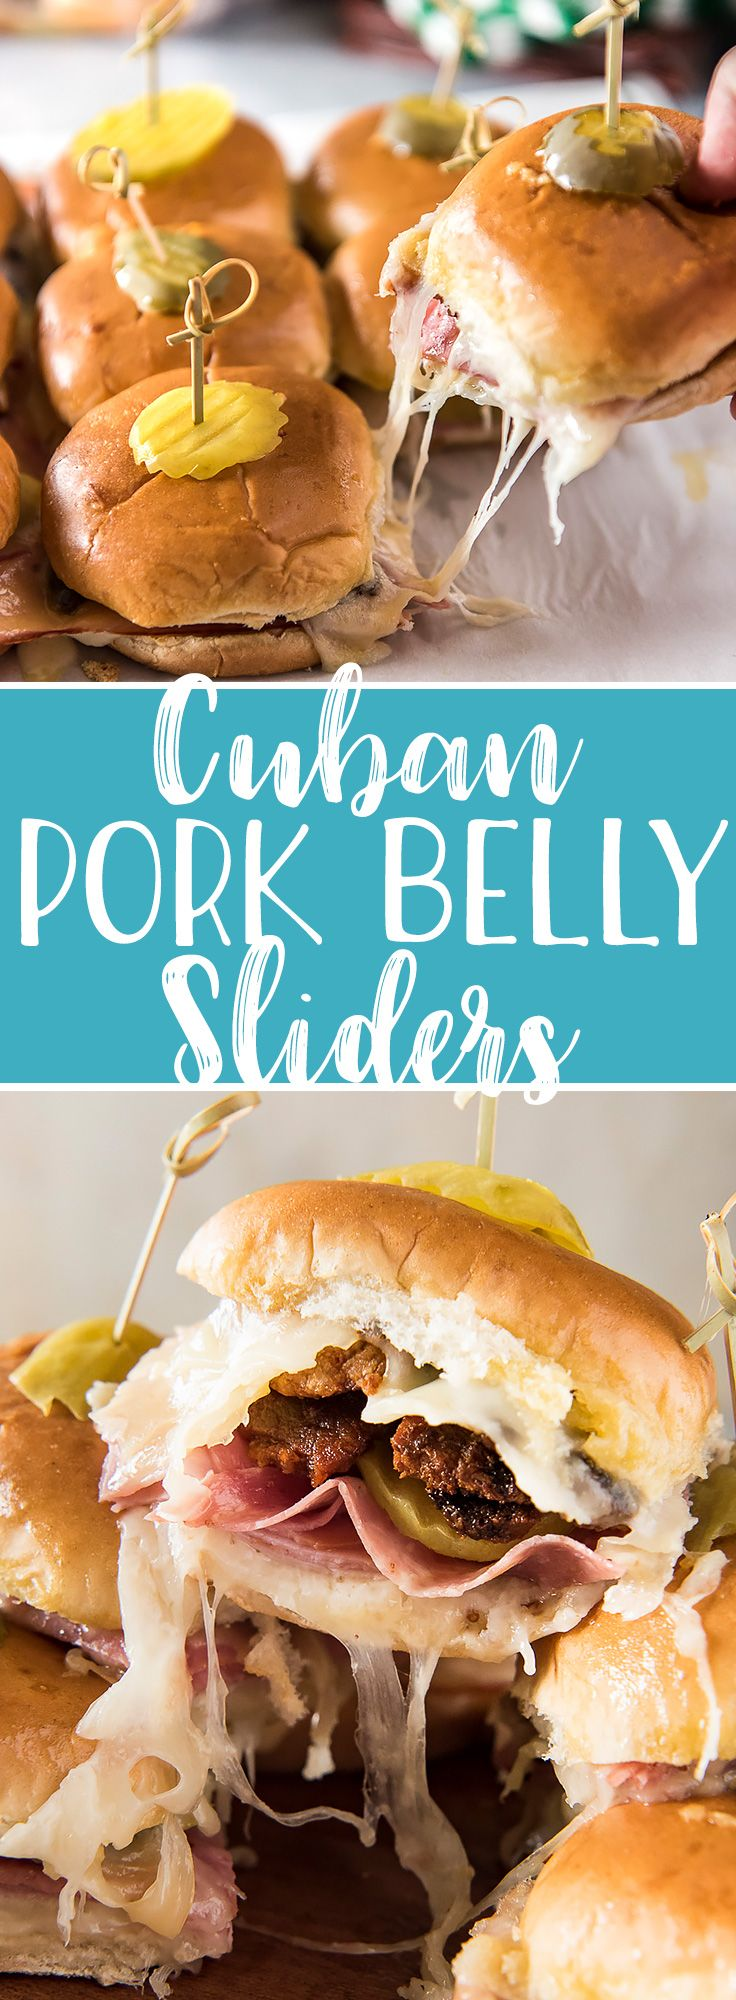 Your whole crowd is going to love theseCuban Pork Belly Sliders! The classic flavor of a Cuban sandwich in a convenient, fun little slider, then elevated with crispy bites of fried pork belly and a healthy dose of garlic butter. #Ad #RespectTheBun #LittleBunsBigWin #BakedWithCare